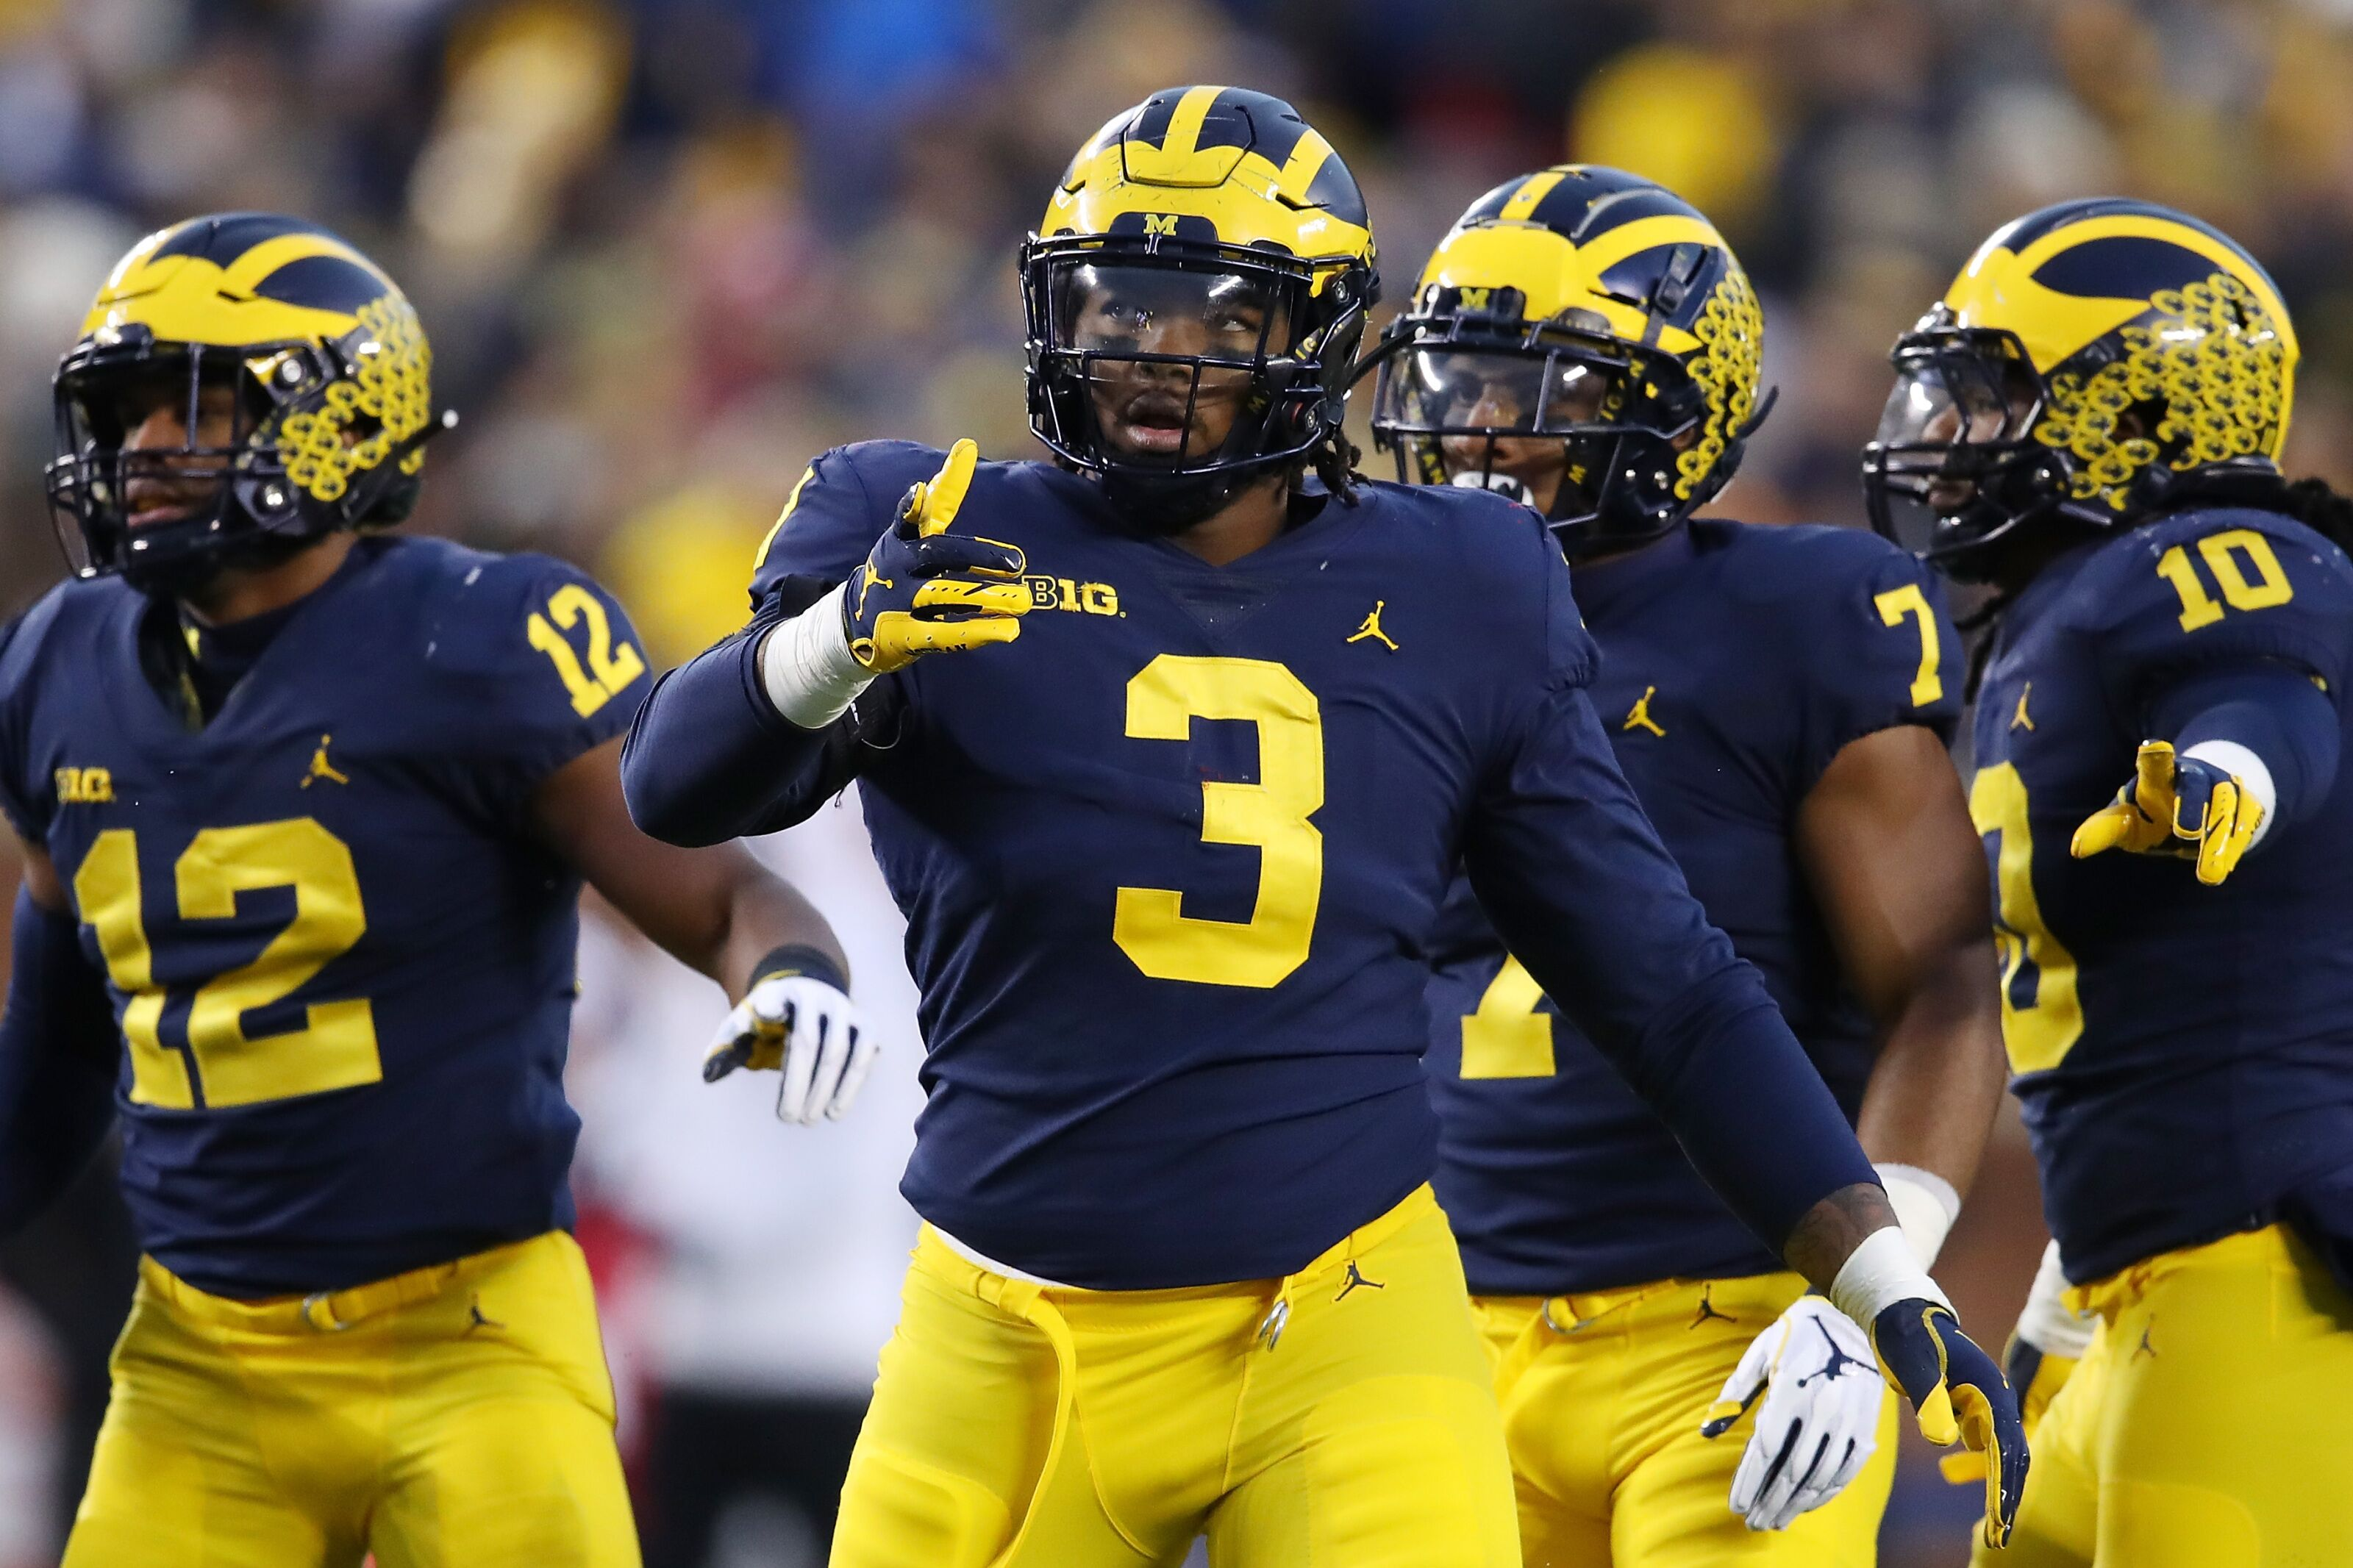 Michigan's Rashan Gary has labrum tear according to report